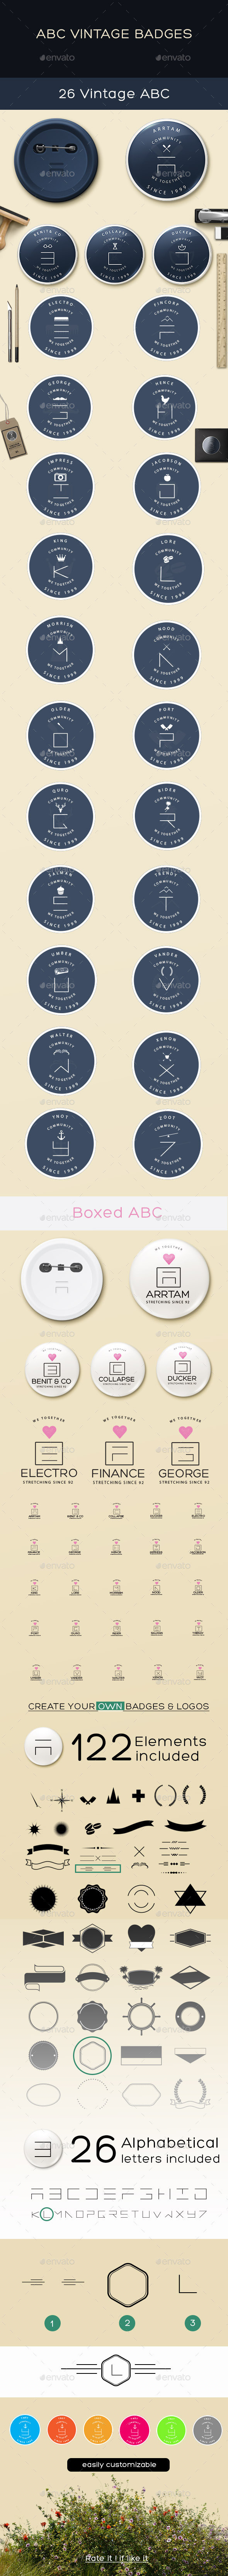 GraphicRiver Vintage ABC Badges 10922390